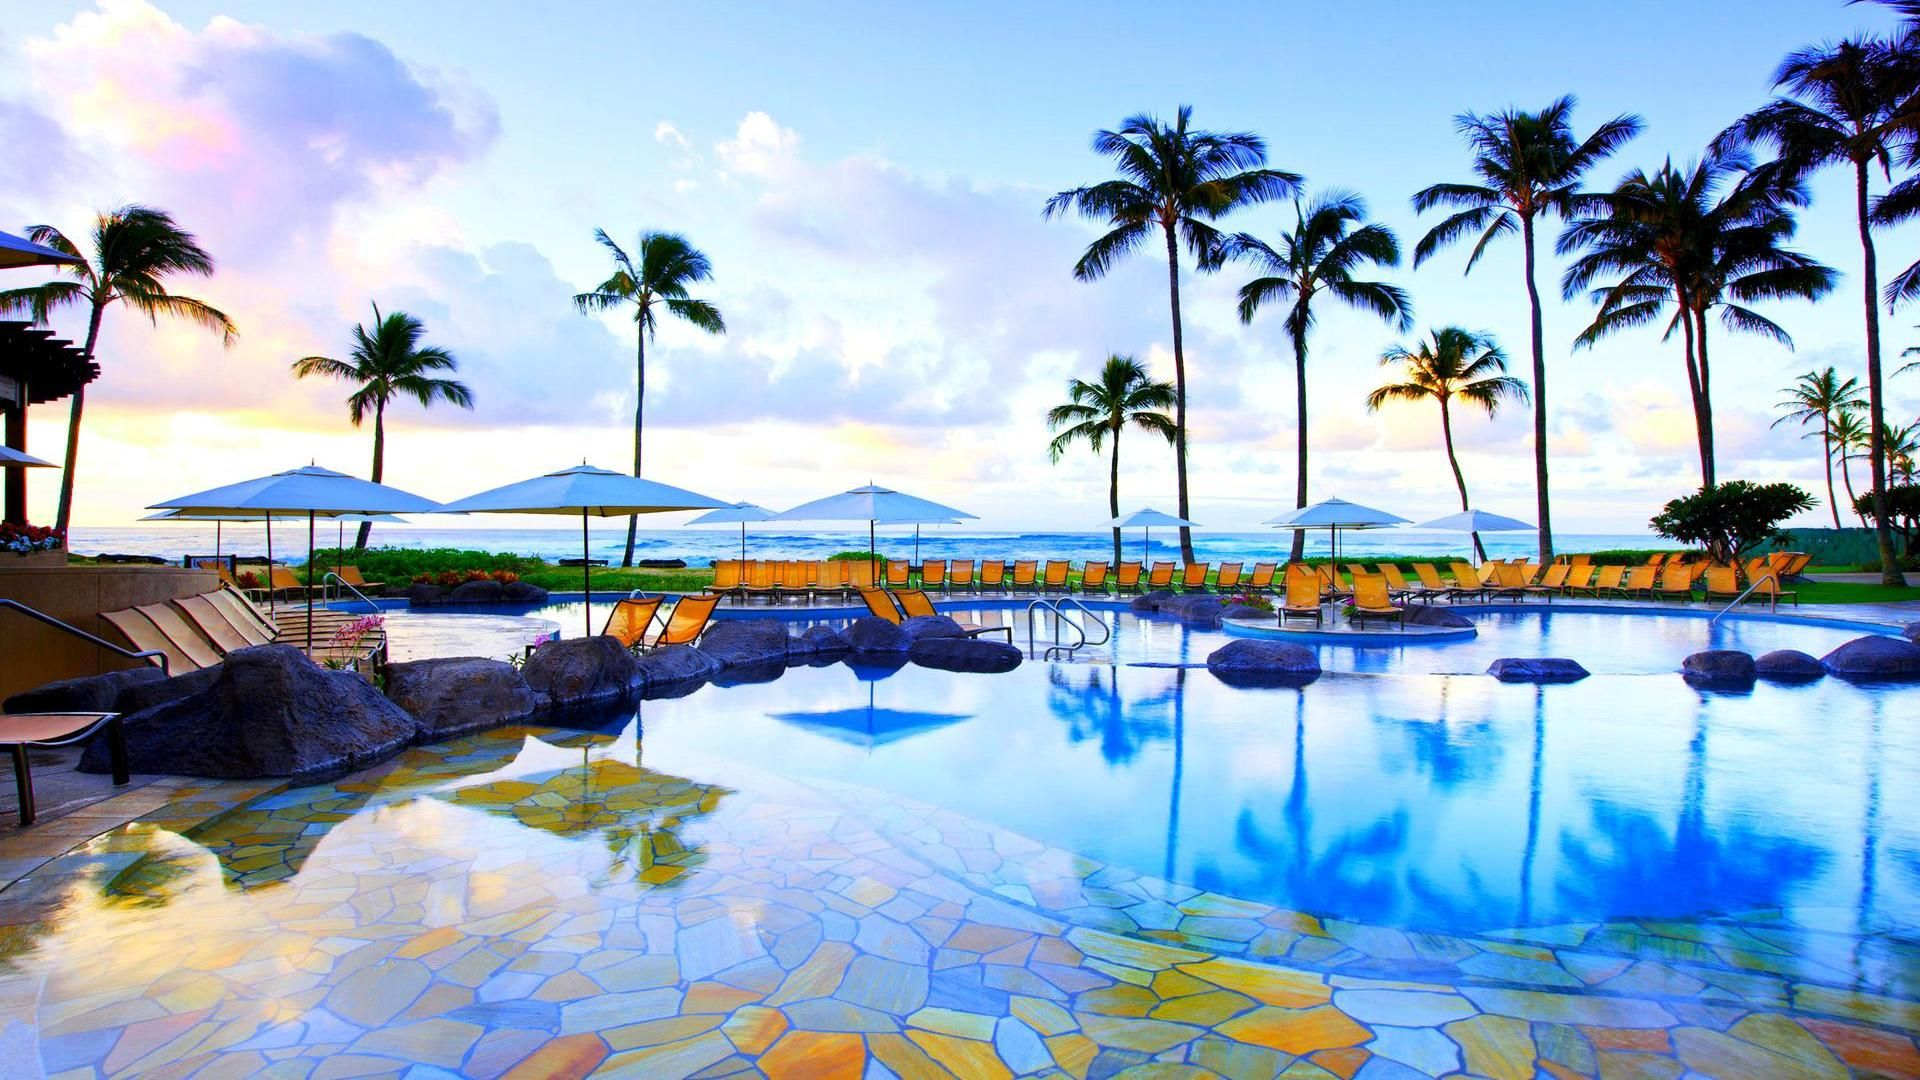 Beautiful Resort Pool In Kauai Hawaii HD Desktop ...